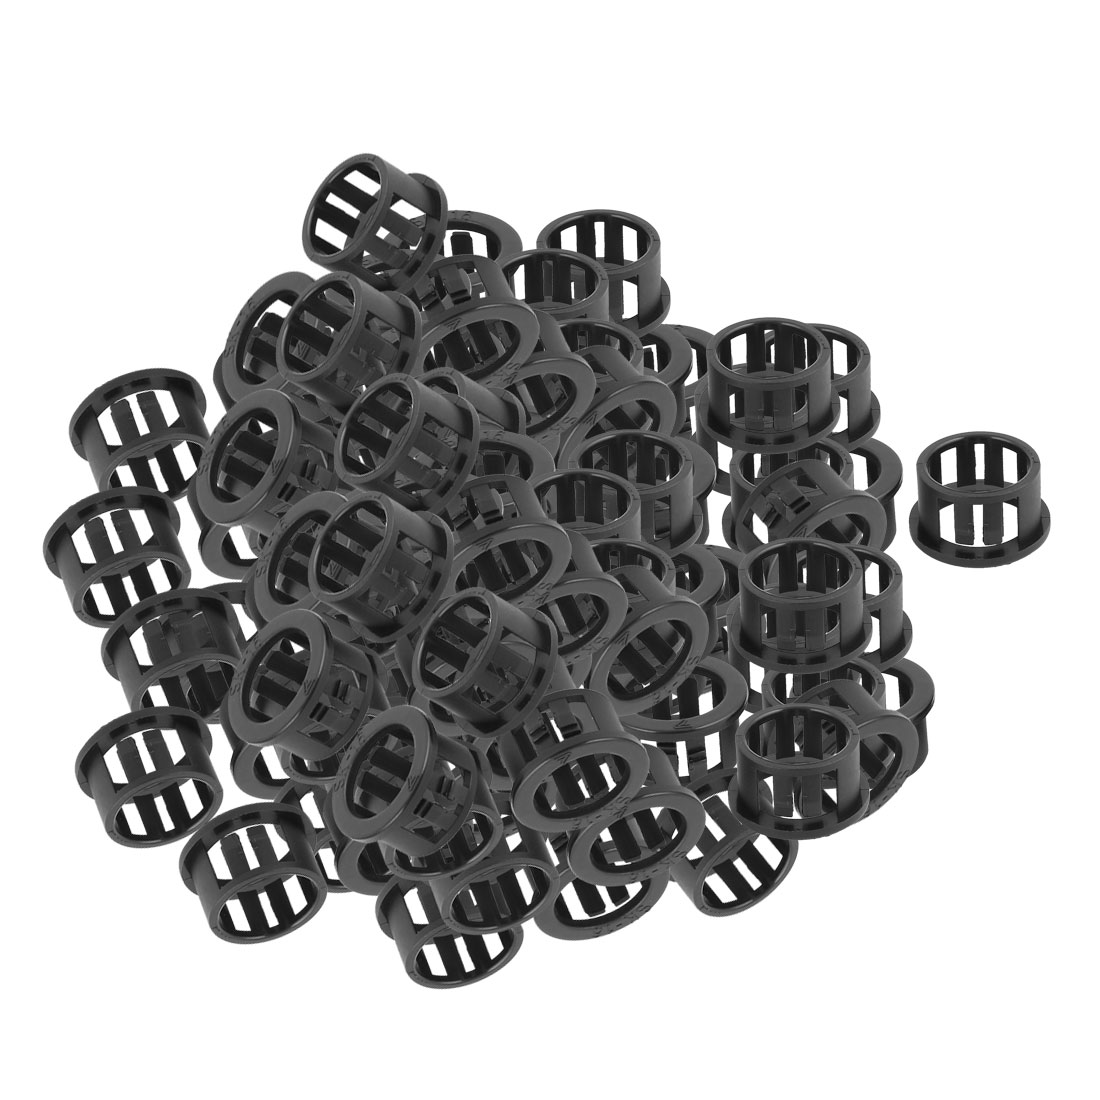 100 Pcs 13mm x 16mm Round Cable Harness Protective Snap Bushing SK-16 Black